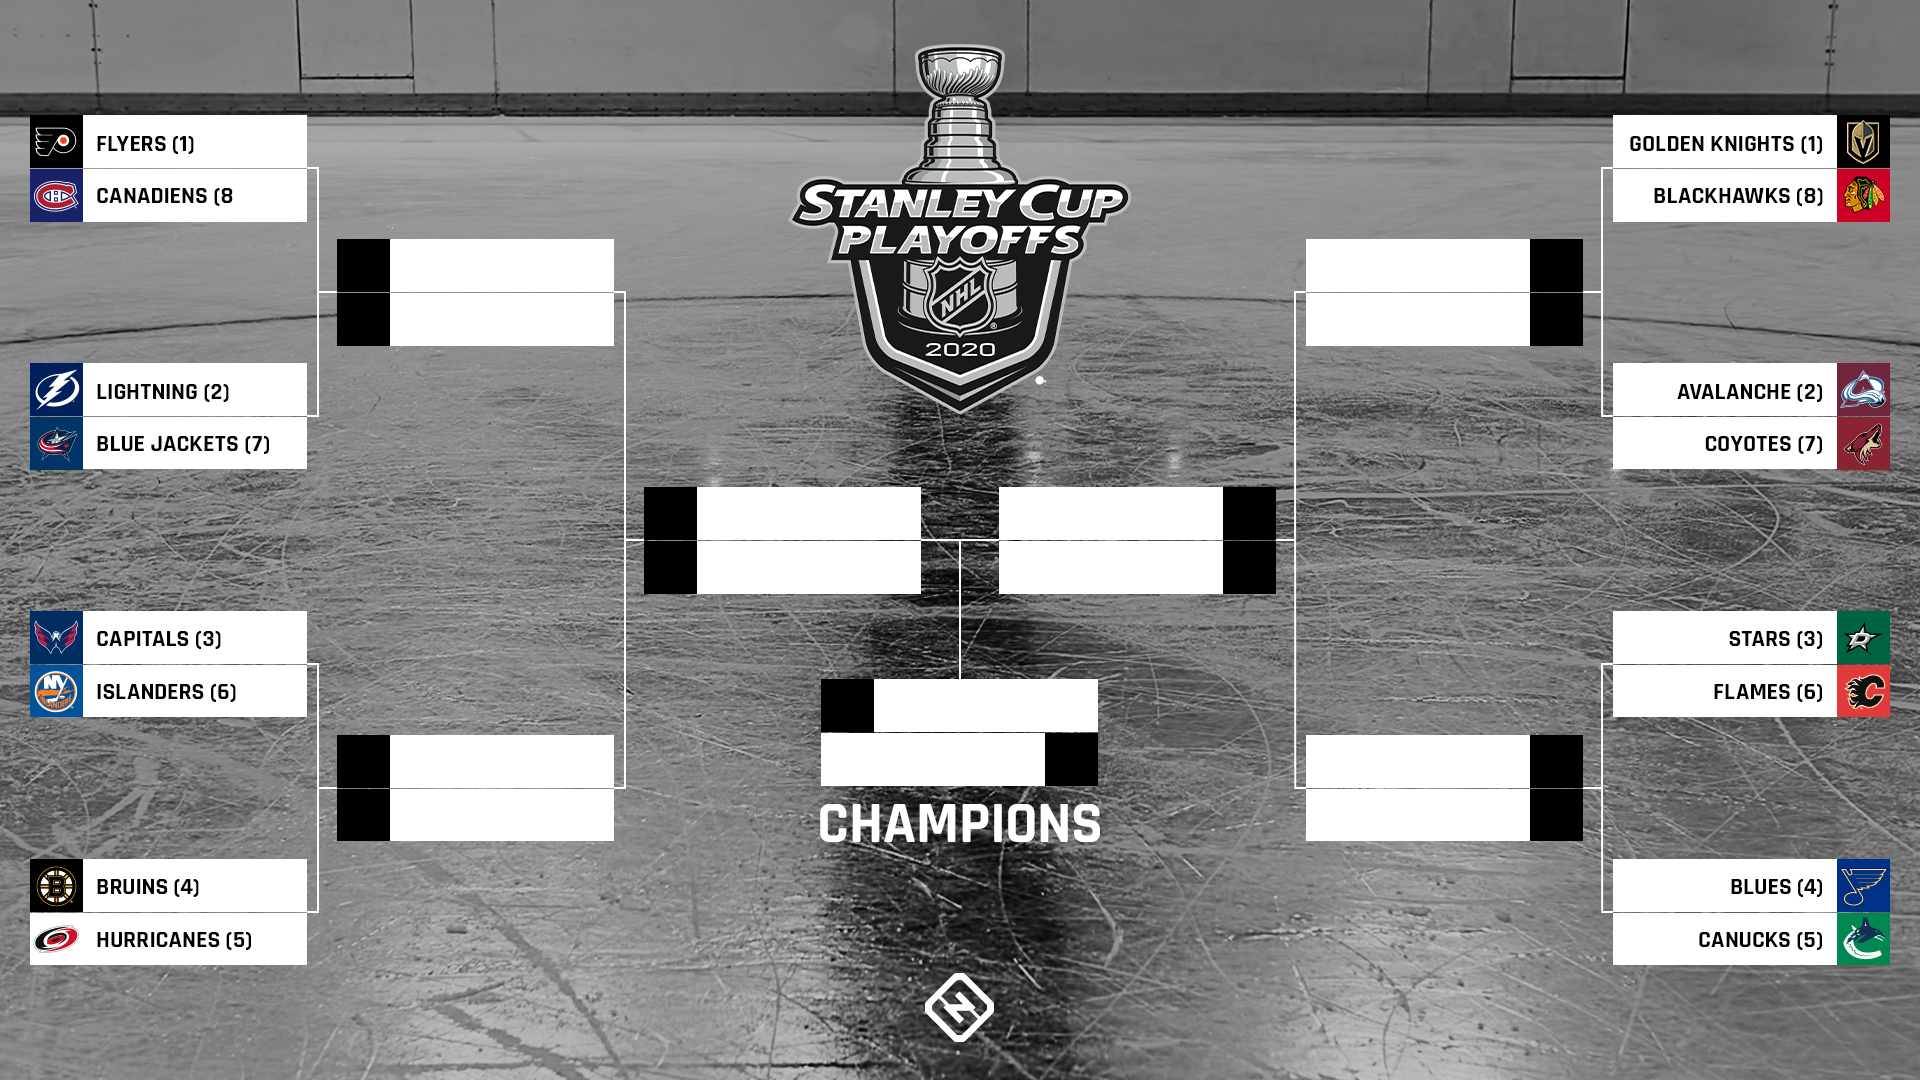 NHL playoff bracket 2020: Updated TV schedule, scores, results for the Stanley Cup playoffs 1